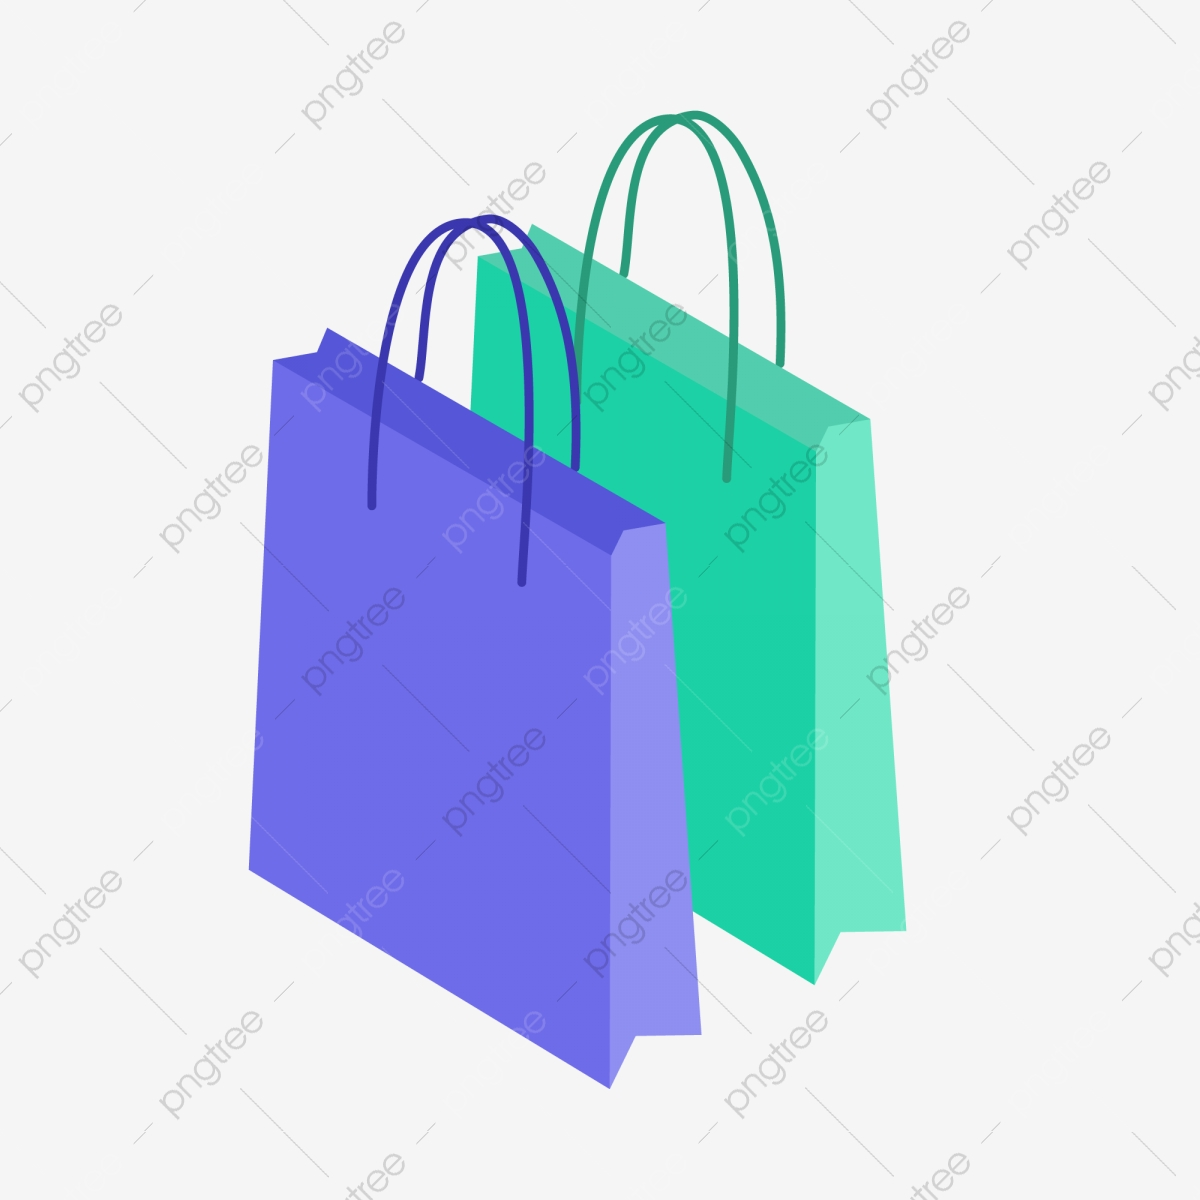 shopping bag vector png free shop shopping girl money bag vector images pngtree https pngtree com freepng 2 5d color shopping bag vector free illustration 4539747 html